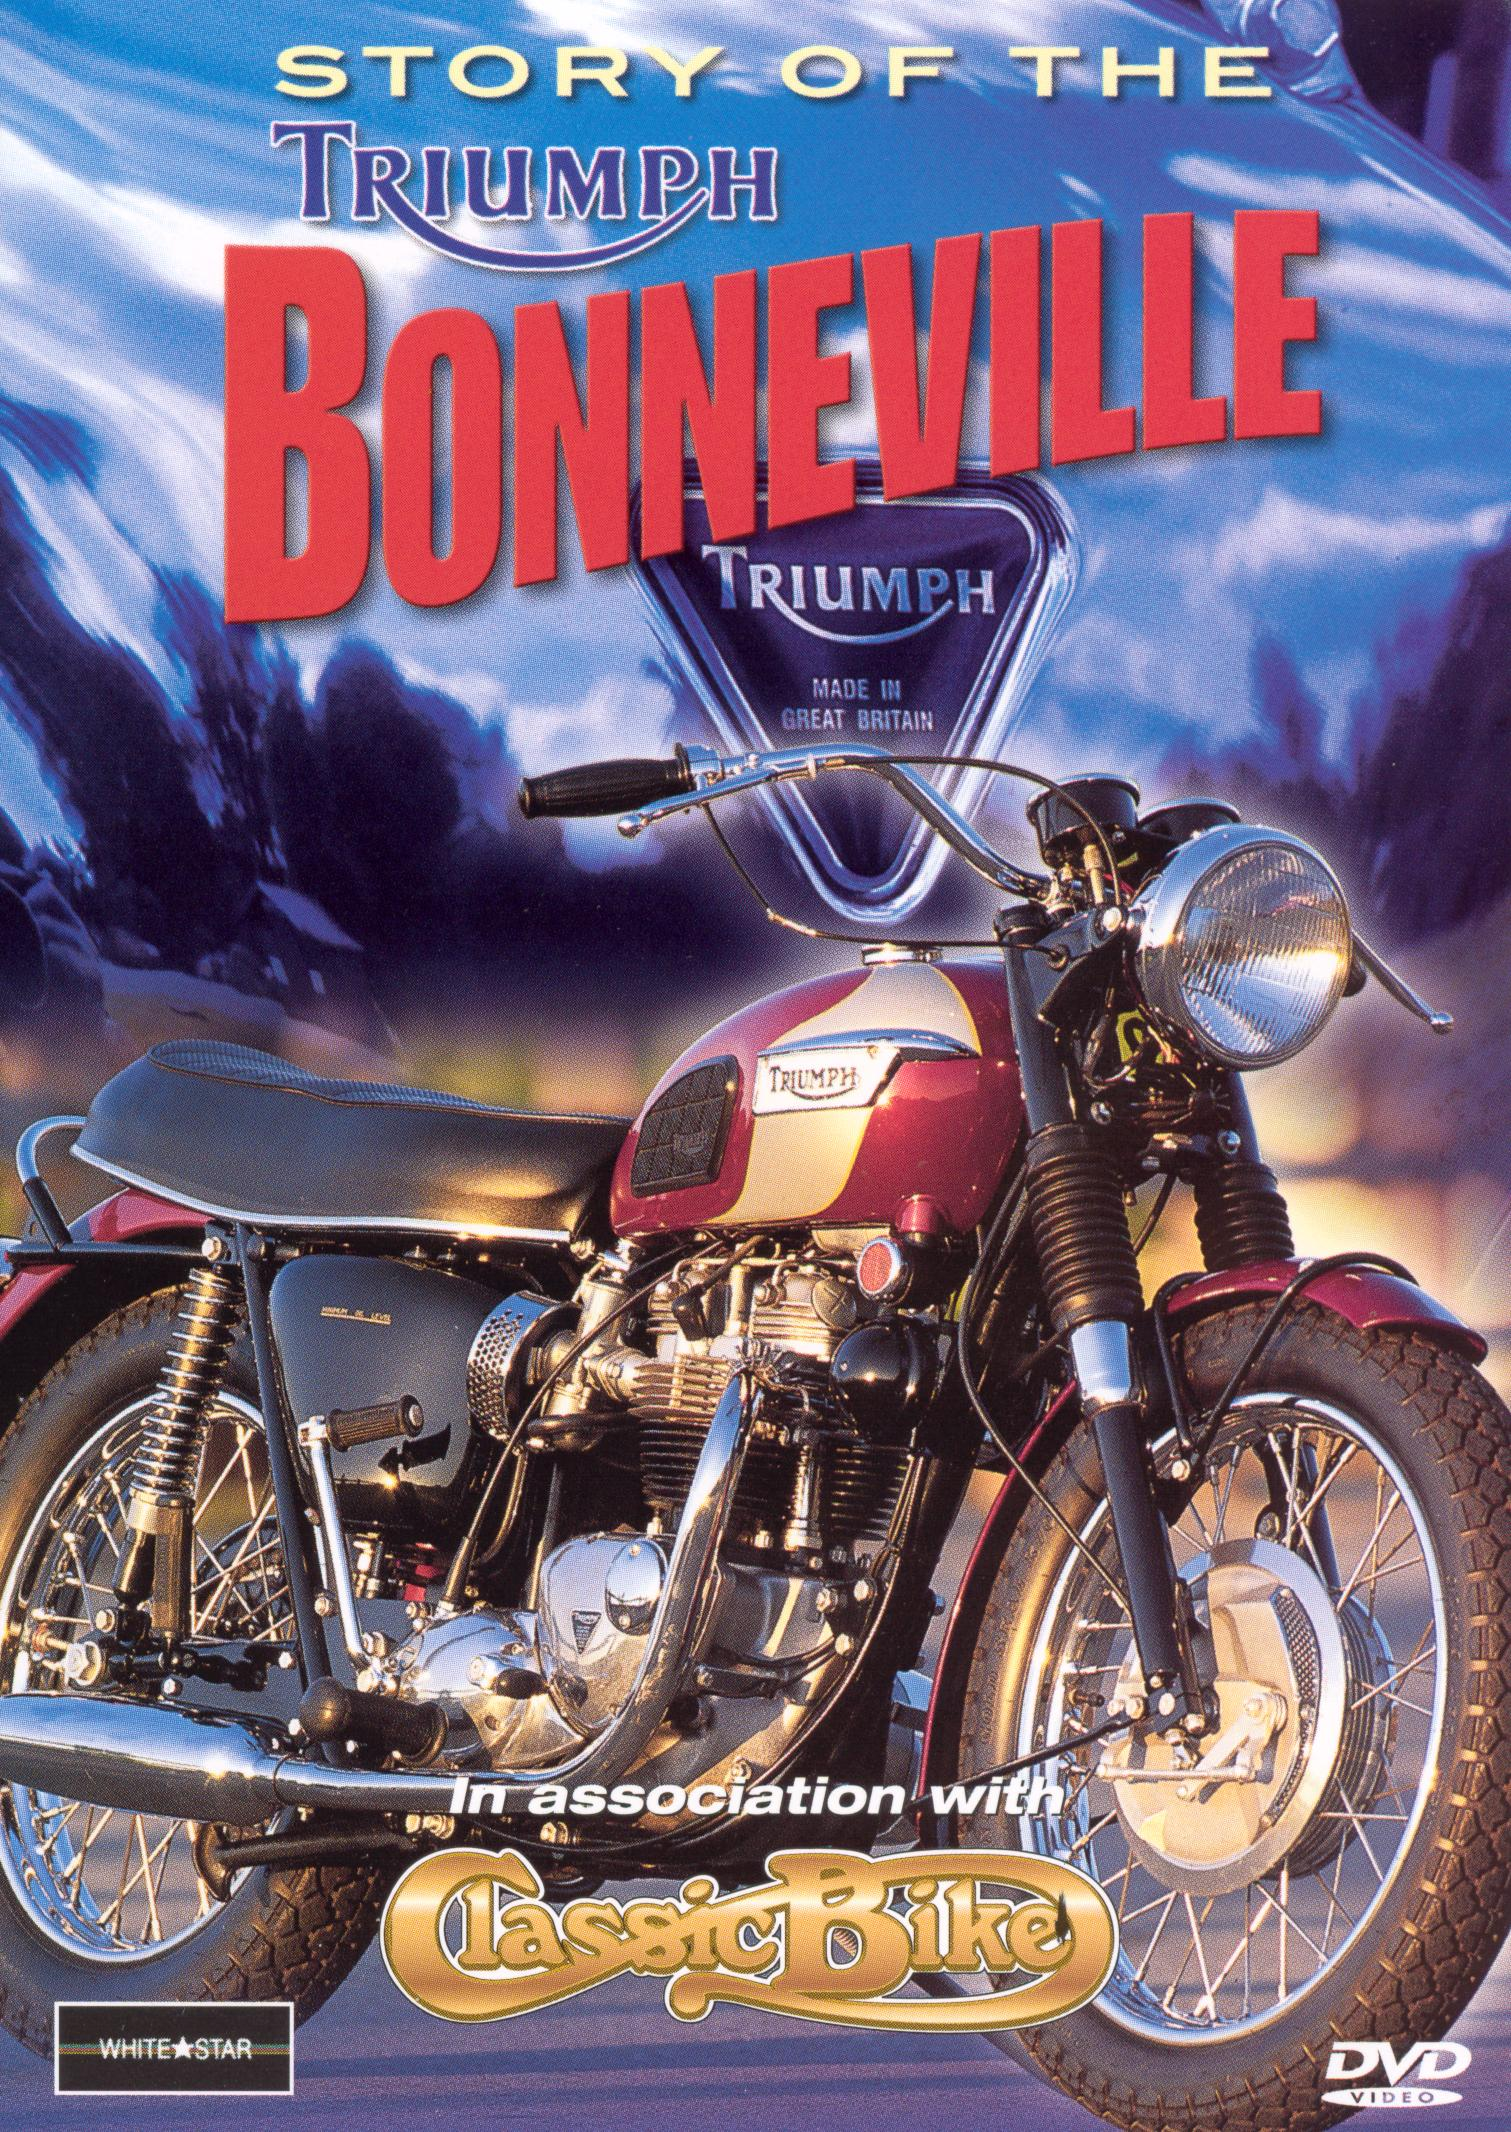 Story of the Triumph Bonneville